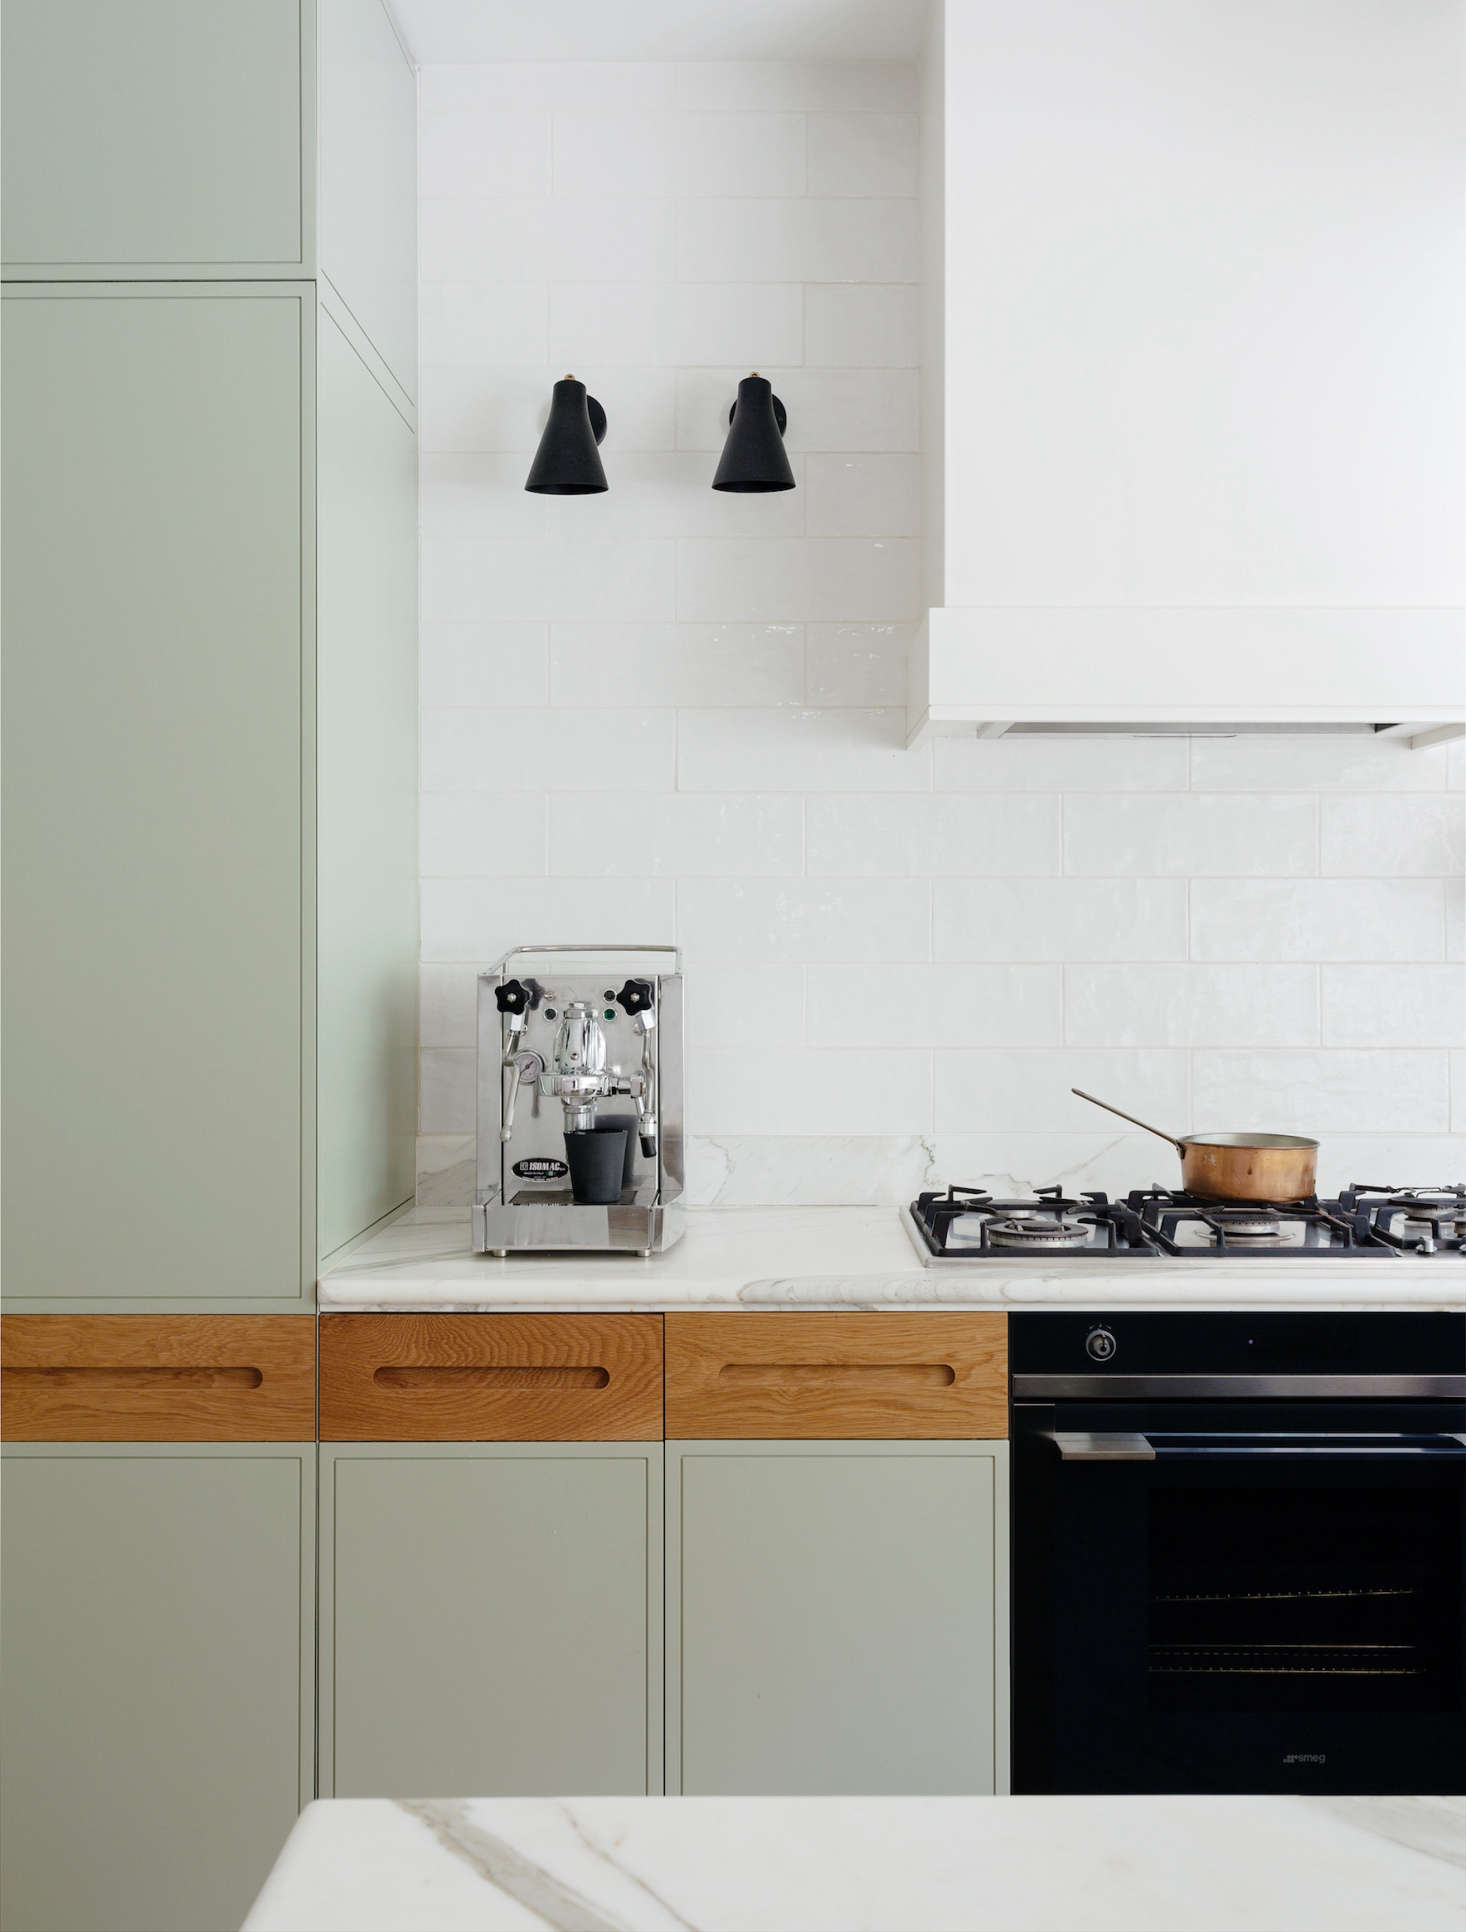 How To Clean Grooves In Kitchen Cabinets